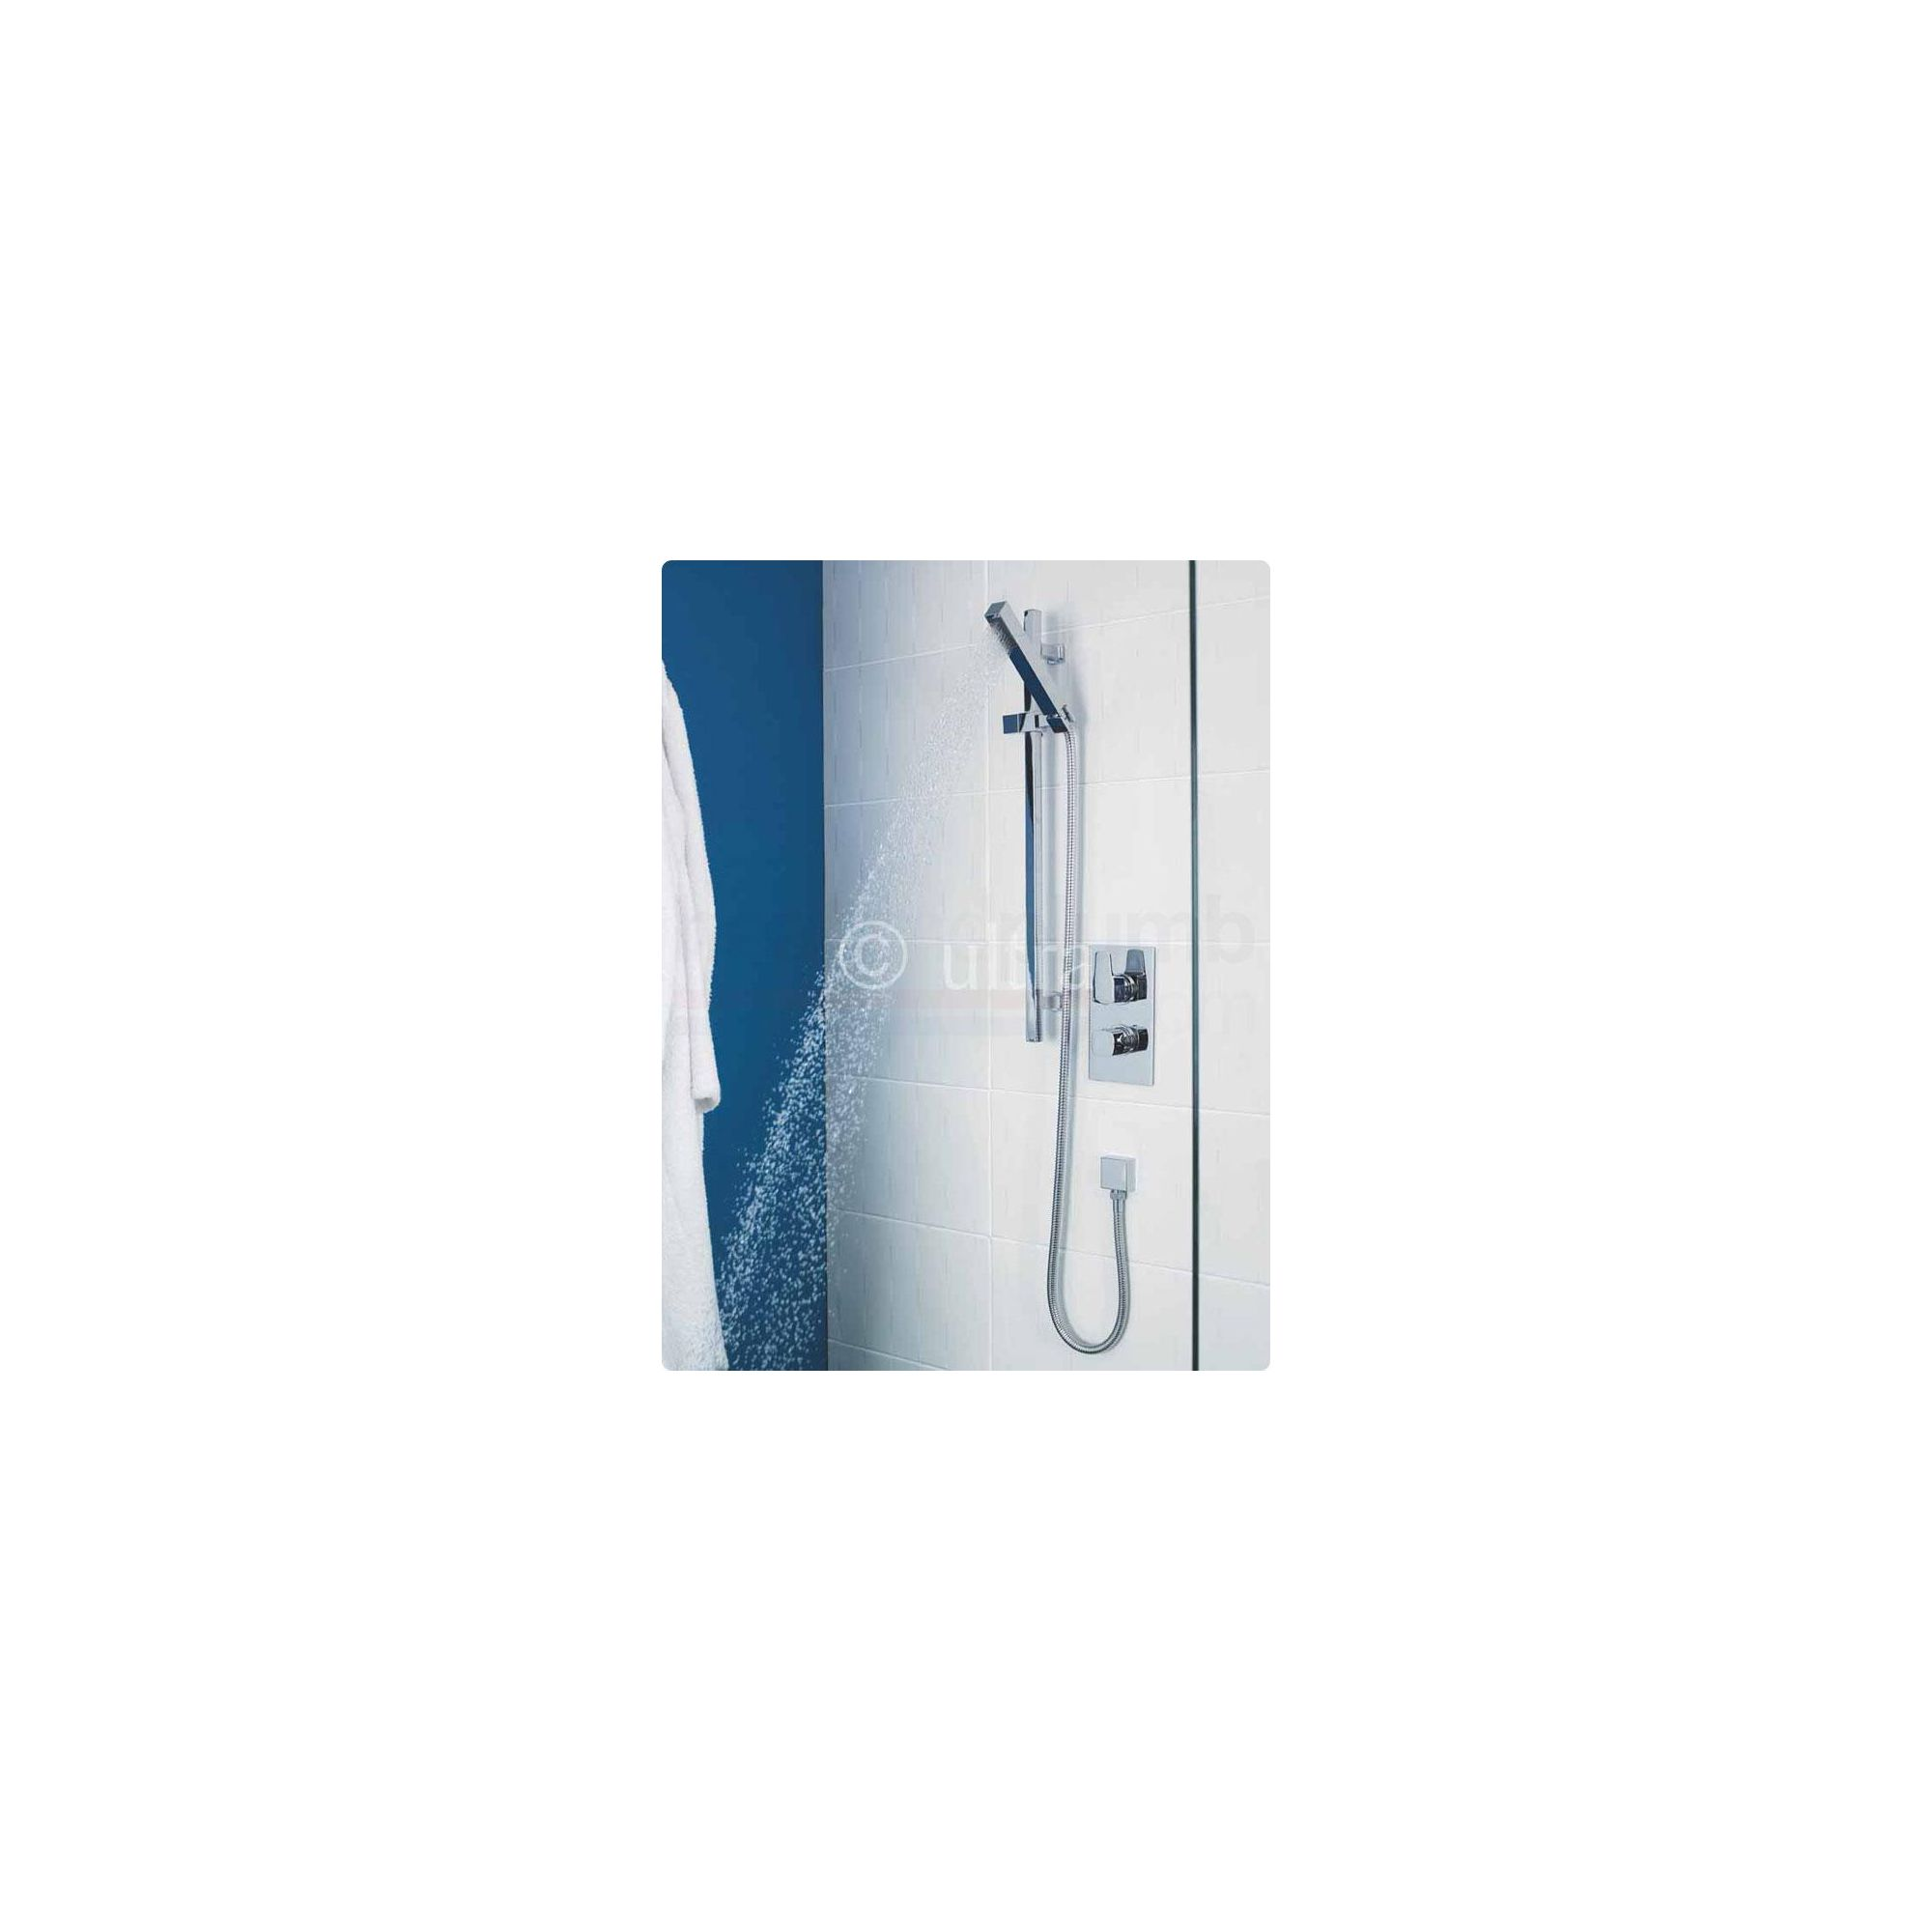 Ultra Series 130 Twin Valve Complete Thermostatic Mixer Shower at Tescos Direct